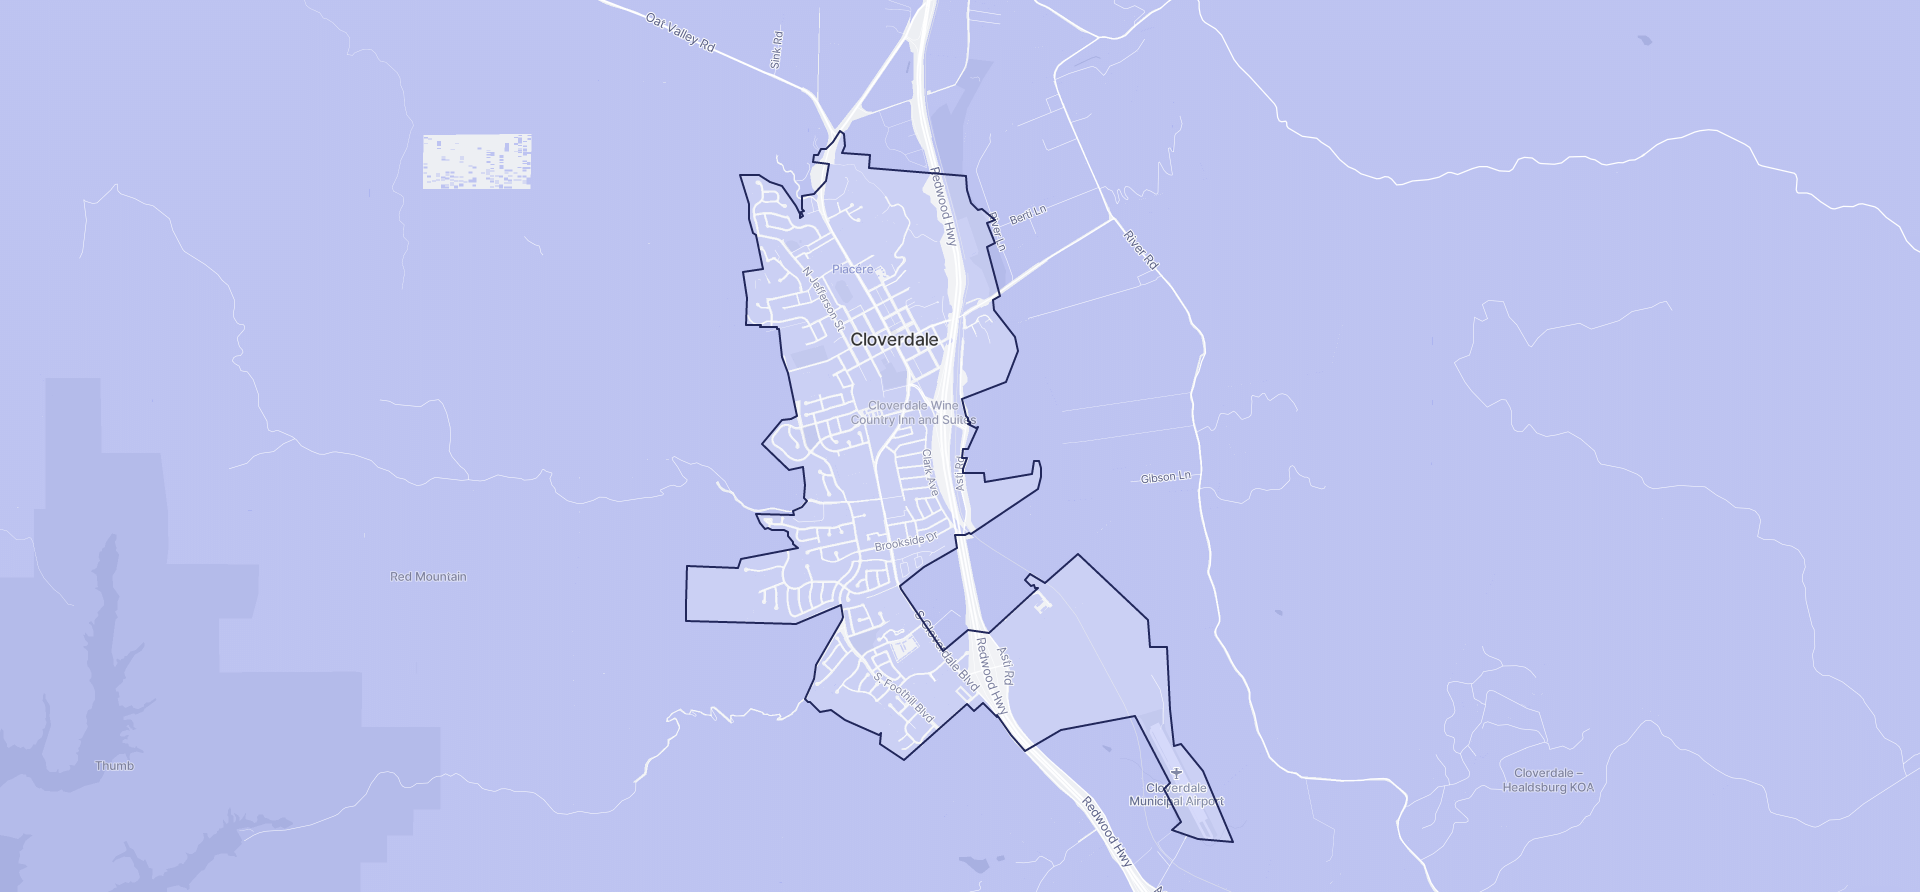 Image of Cloverdale boundaries on a map.